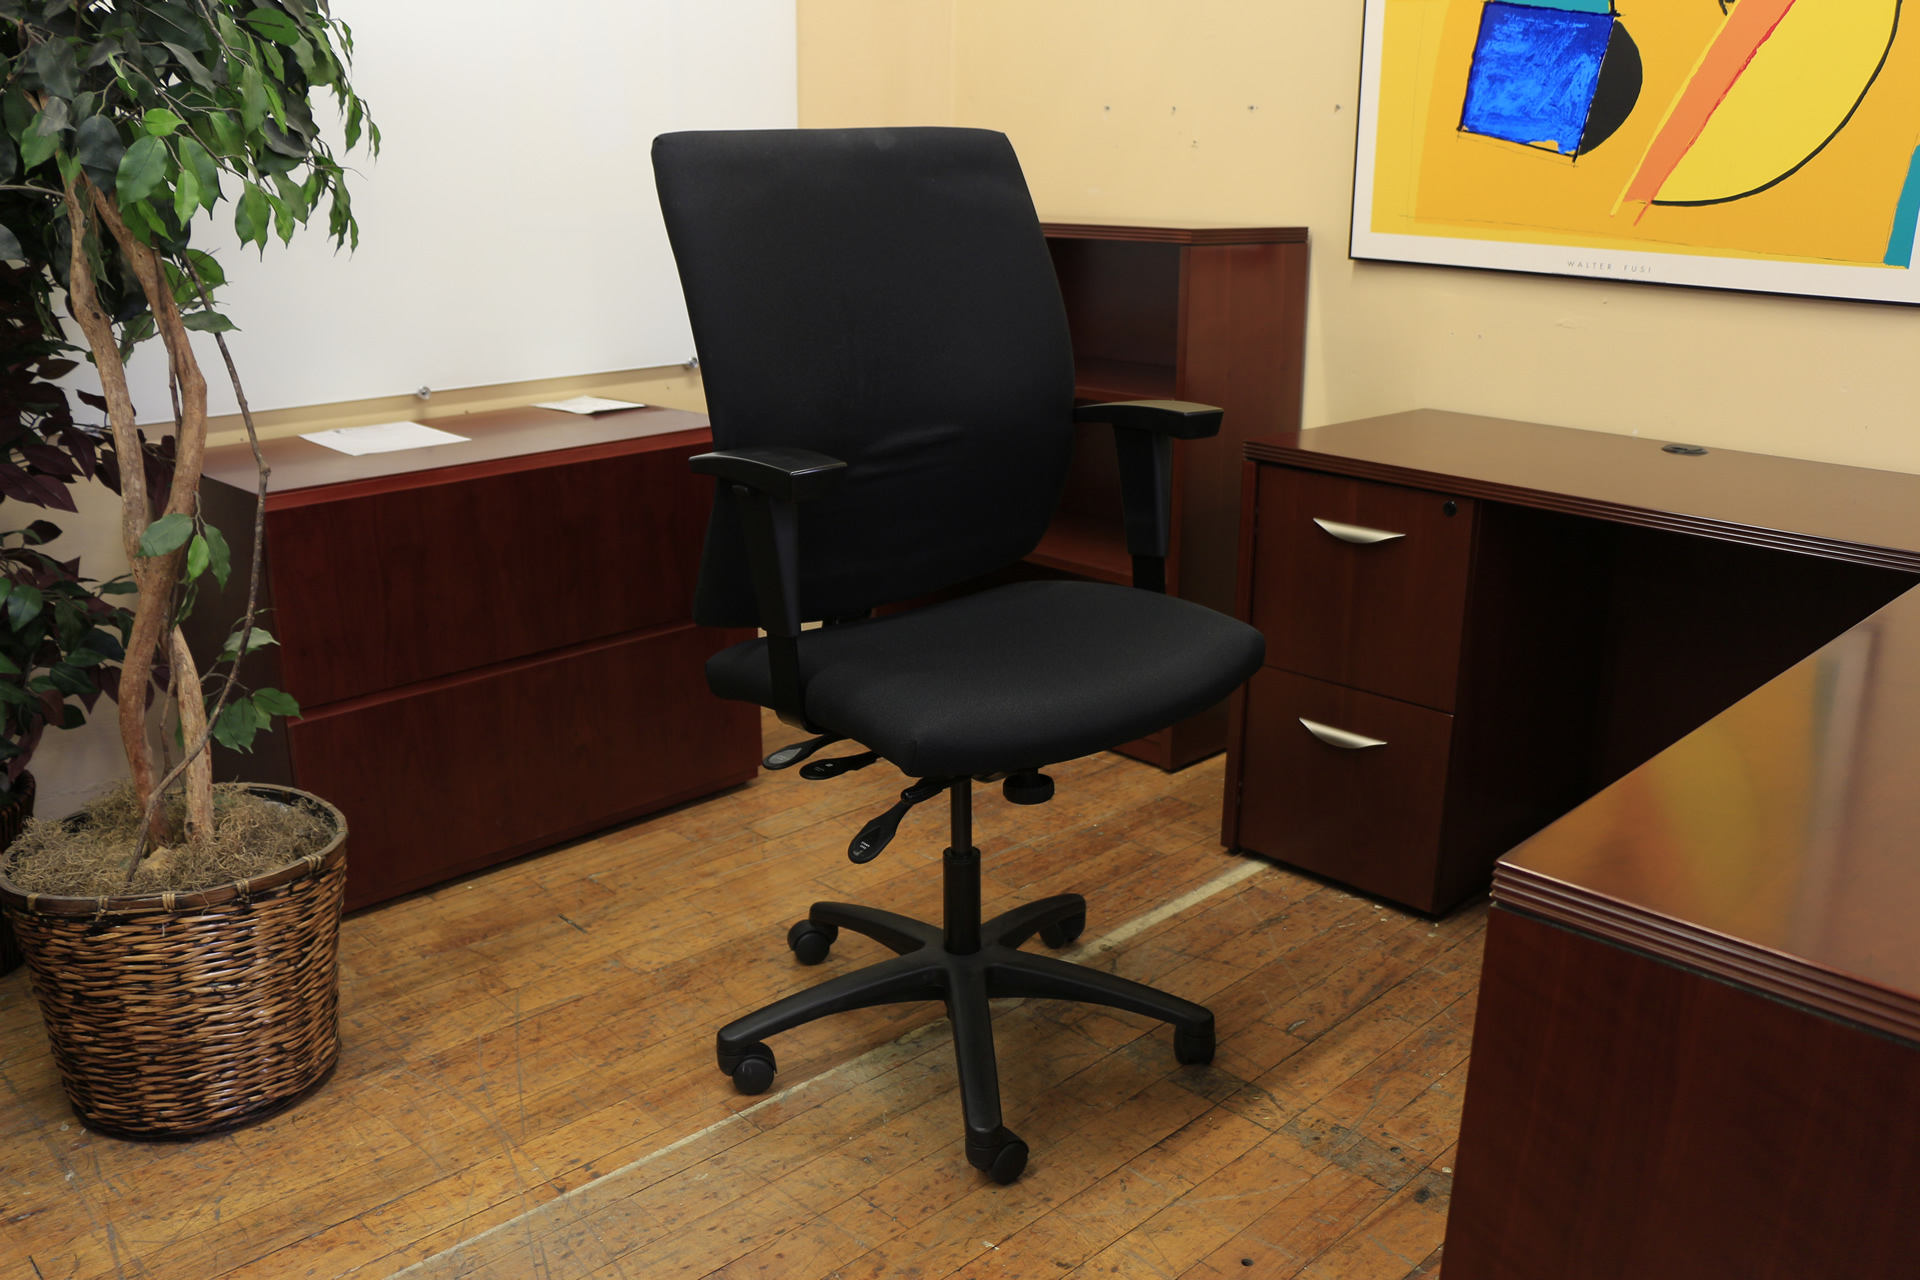 peartreeofficefurniture_peartreeofficefurniture_peartreeofficefurniture_2015-06-02_20-04-12.jpg